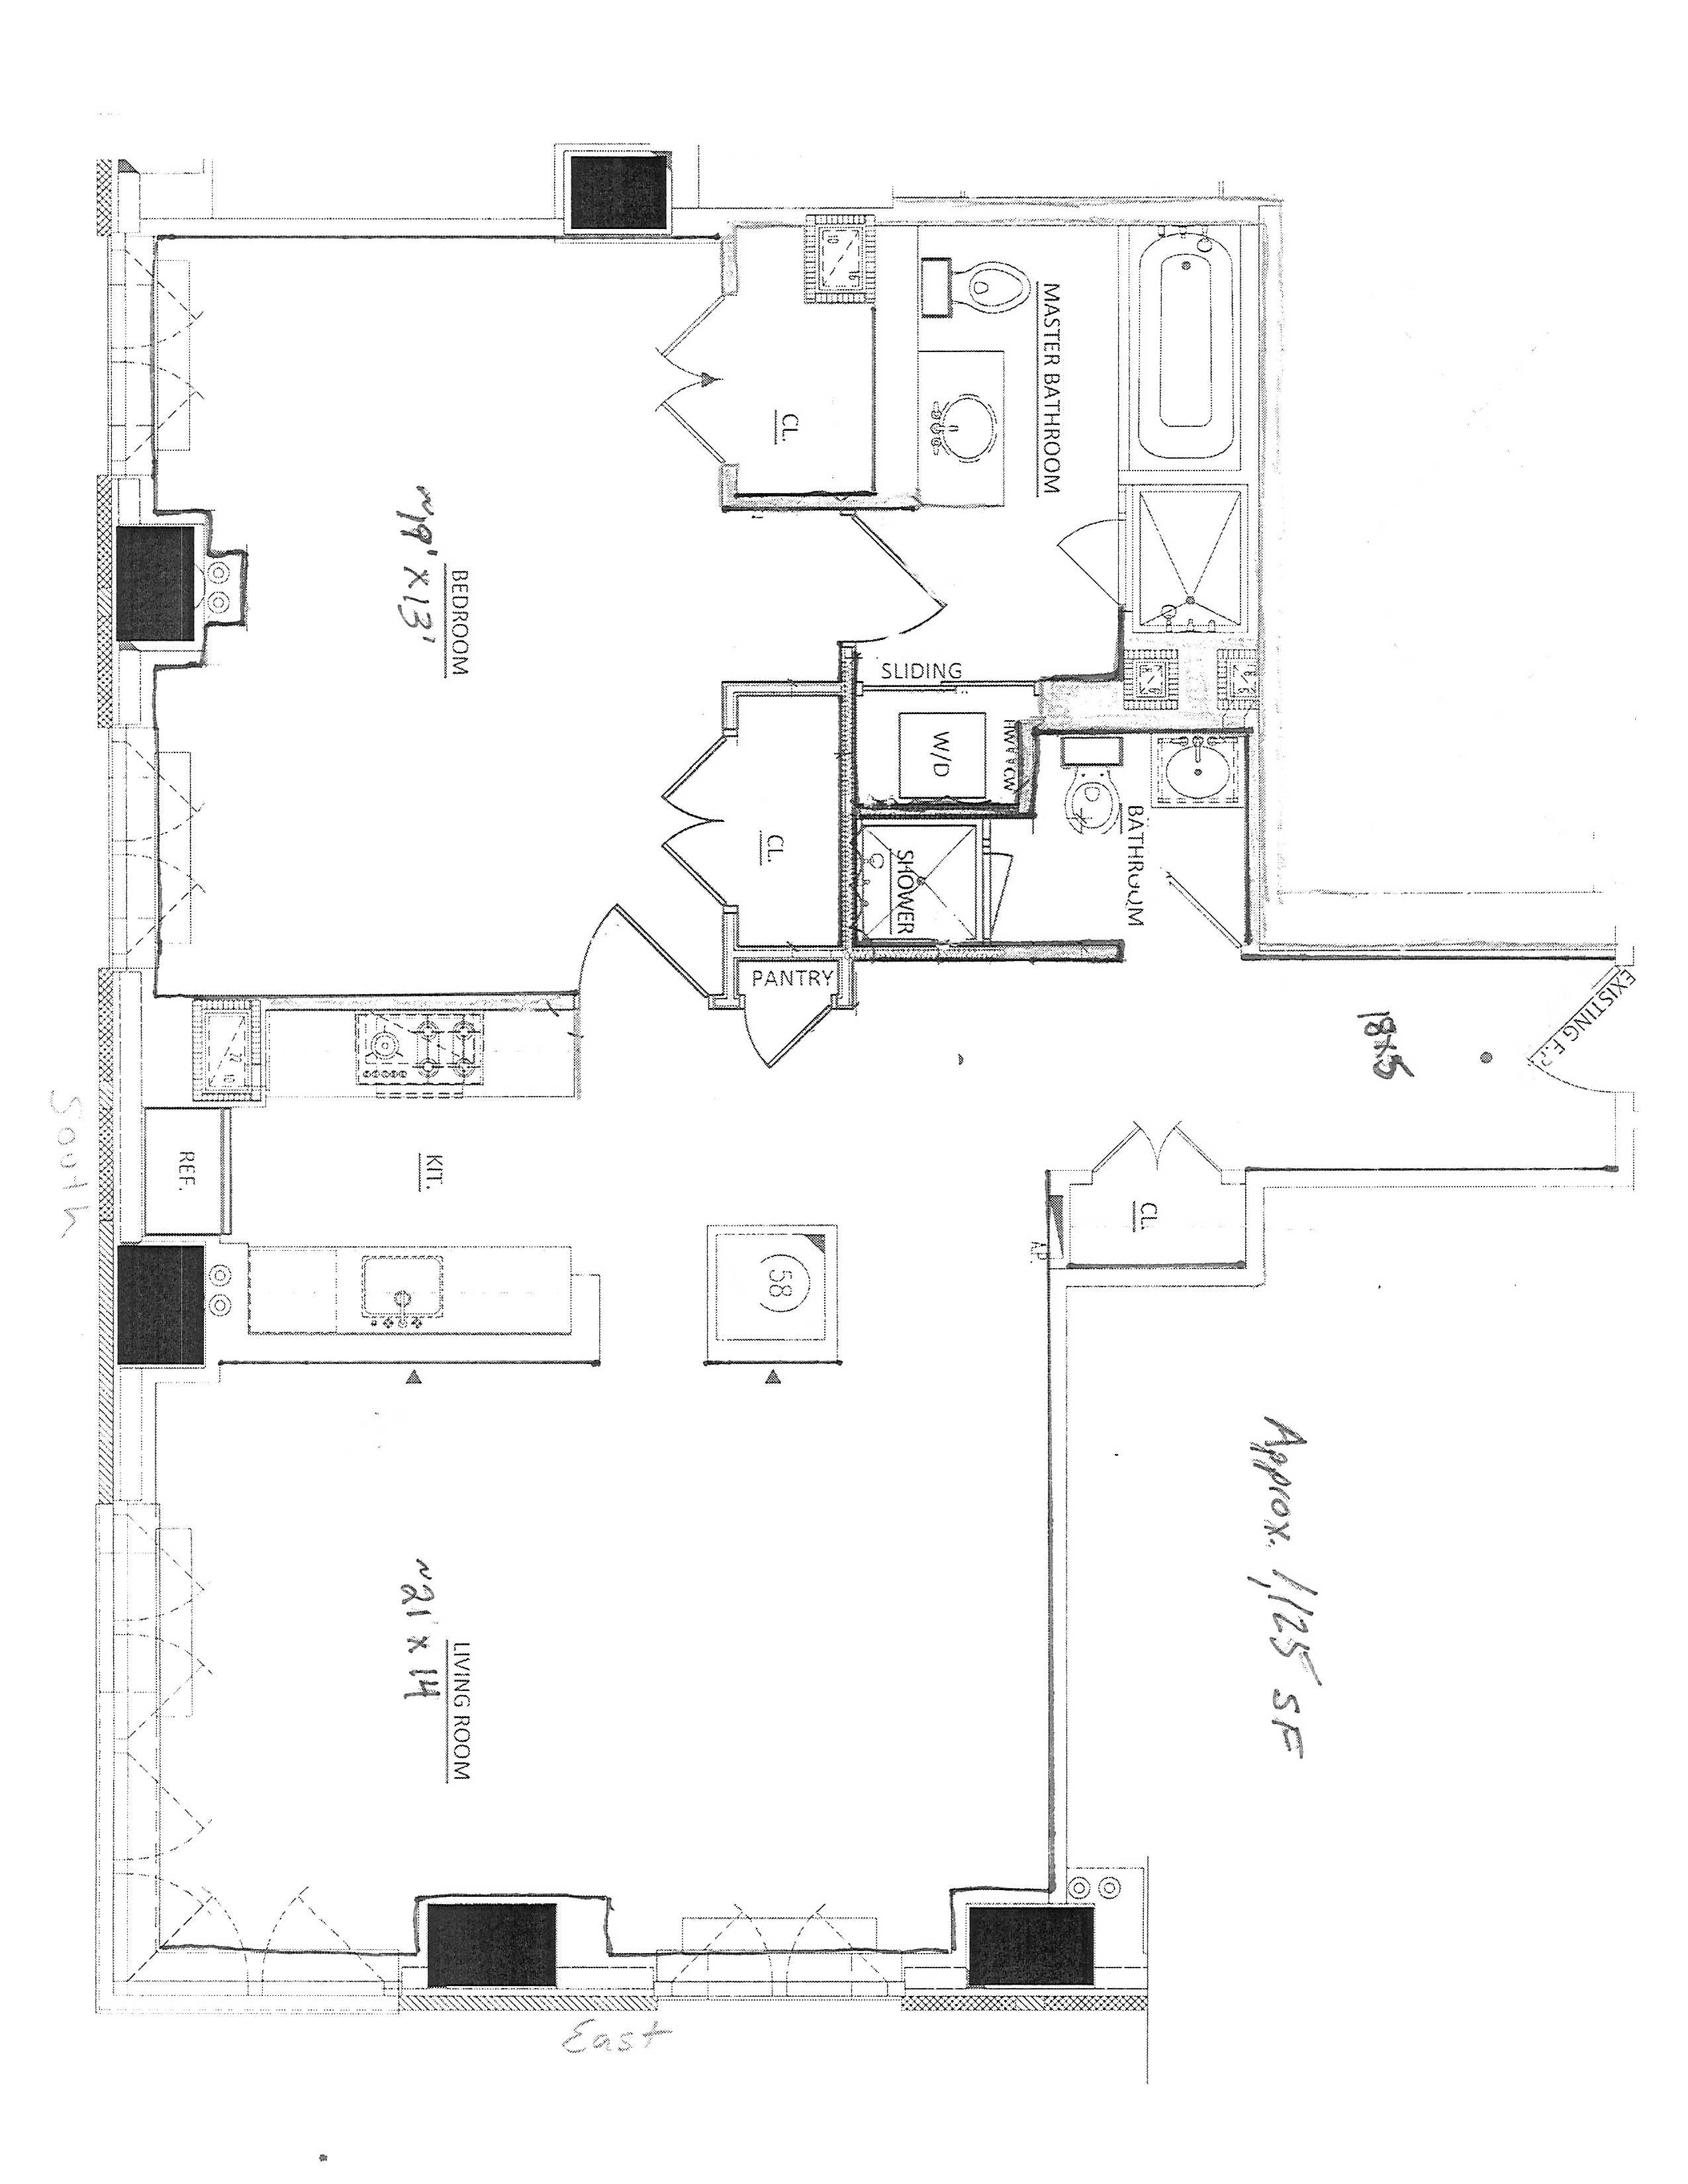 42nd Flr on 5th Ave, South East Corner Open View. Double high windows & 11 ft ceilings. Luxury Re-design. Best in building